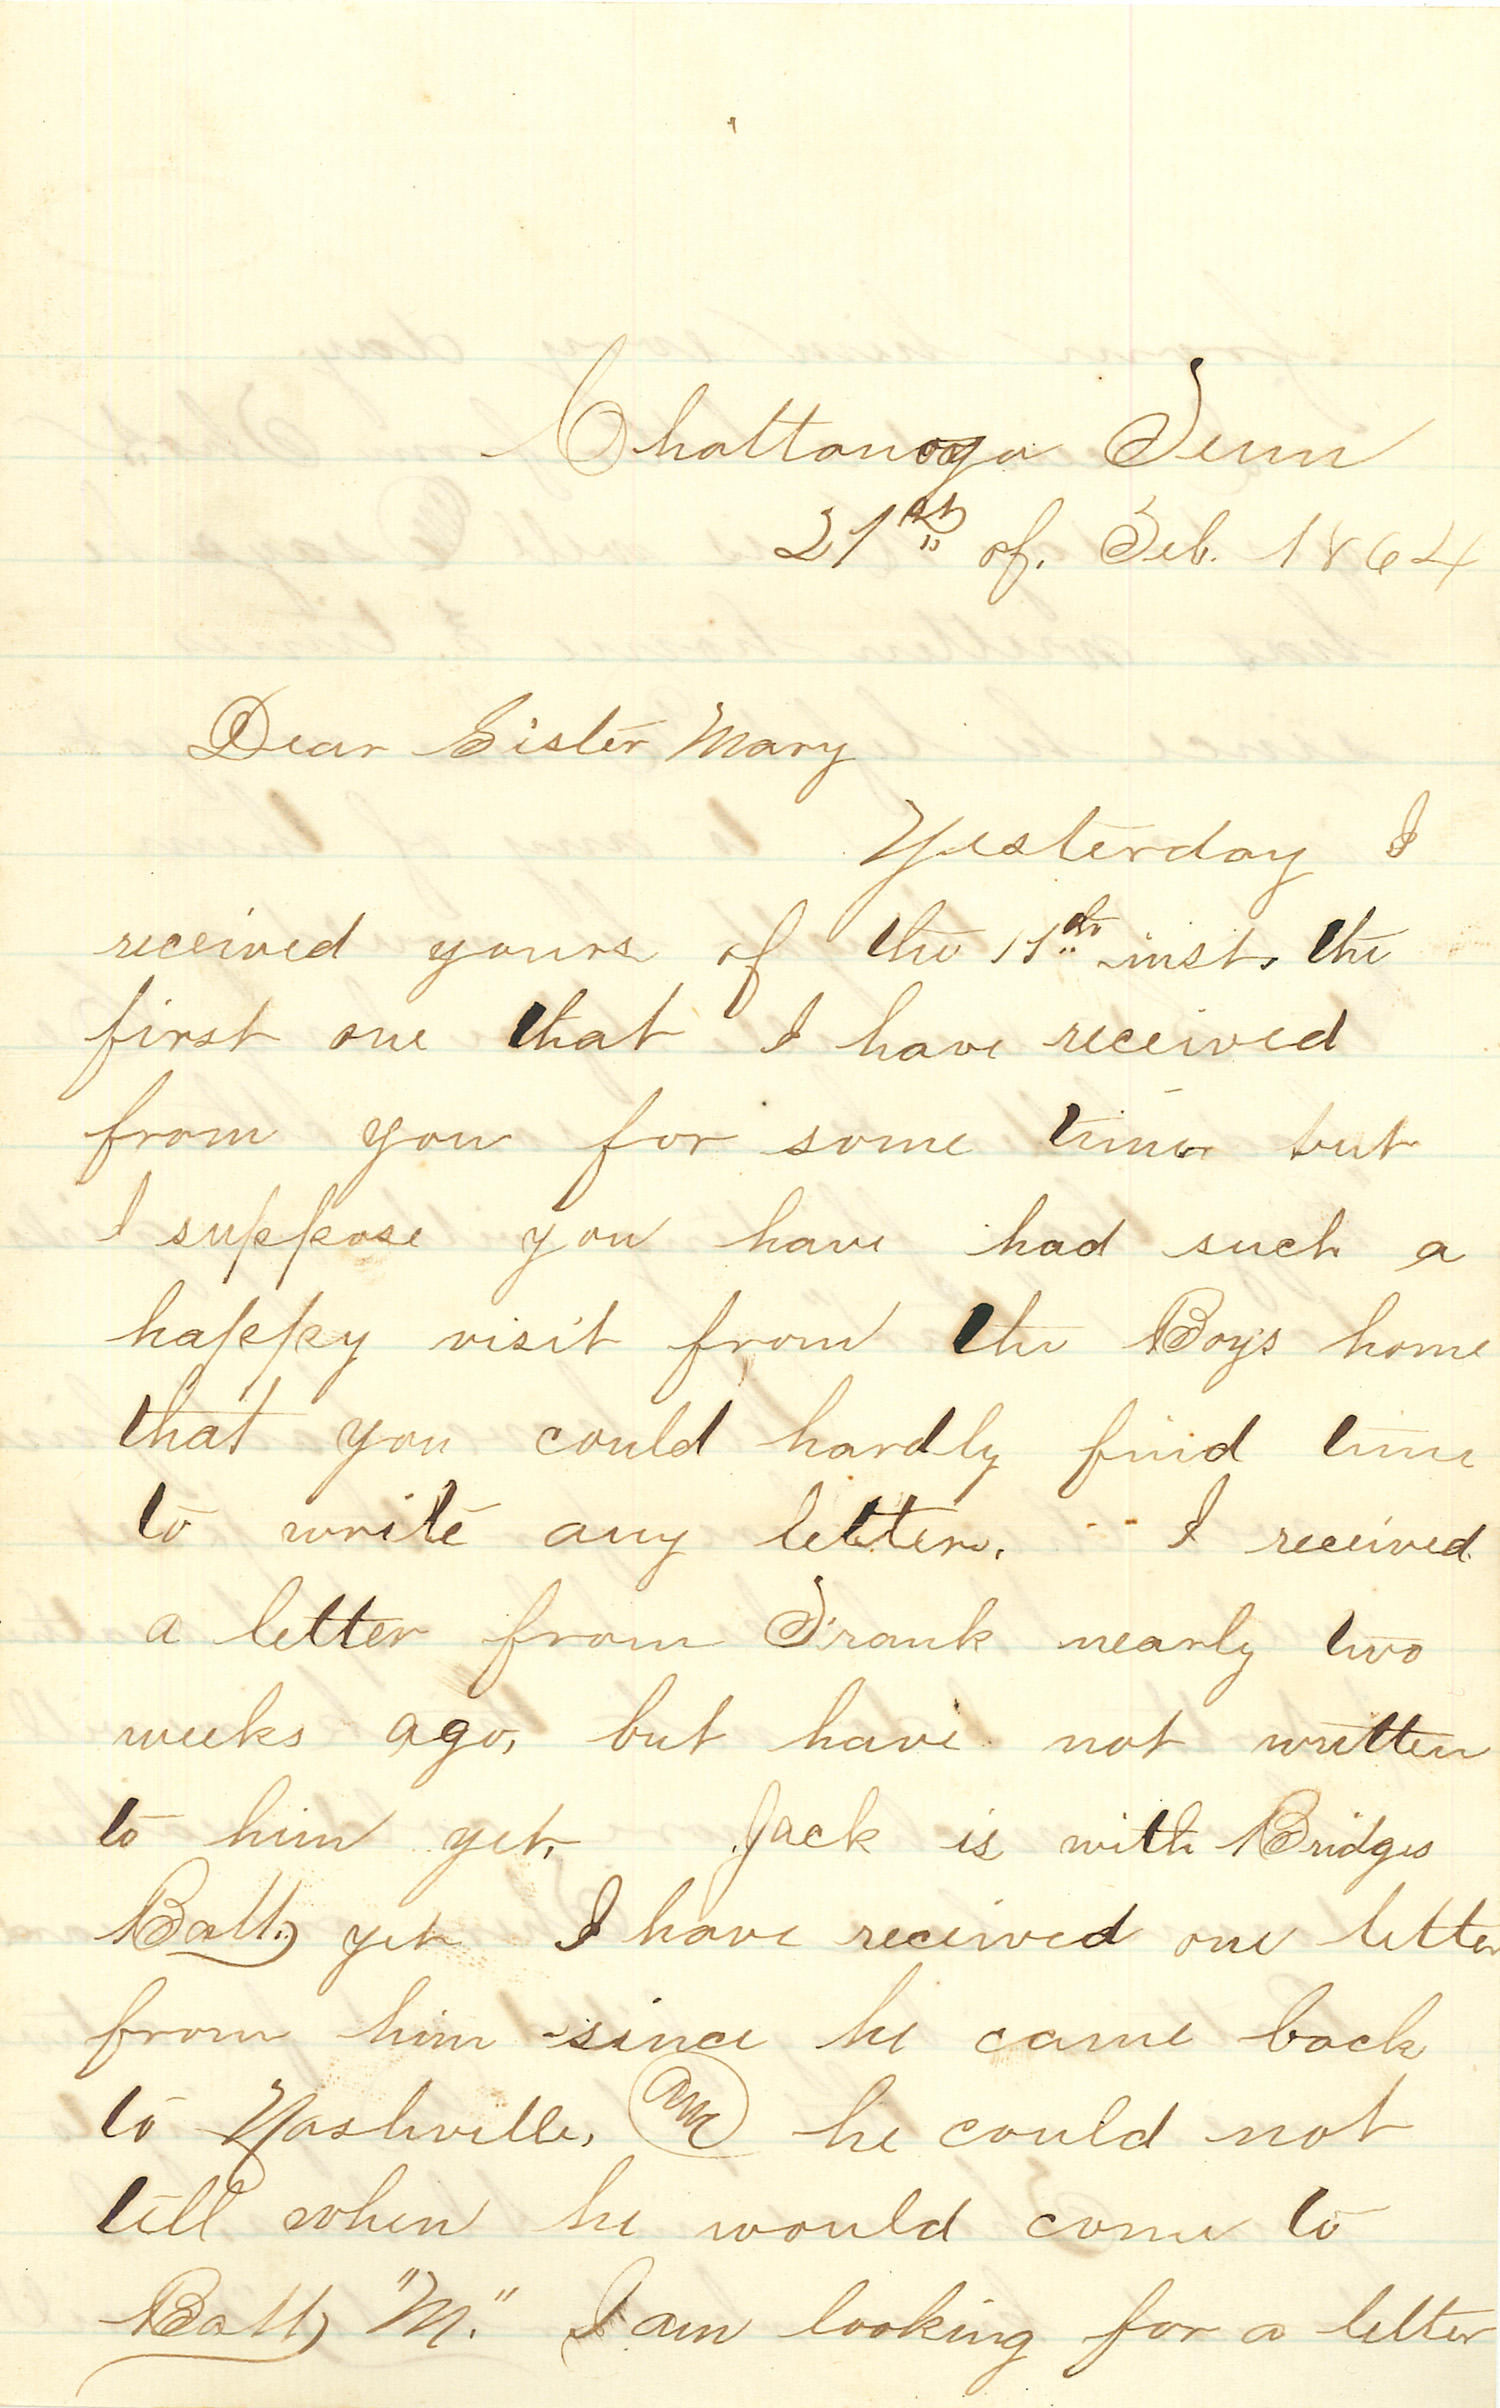 Joseph Culver Letter, February 21, 1864, Letter 2, Page 1